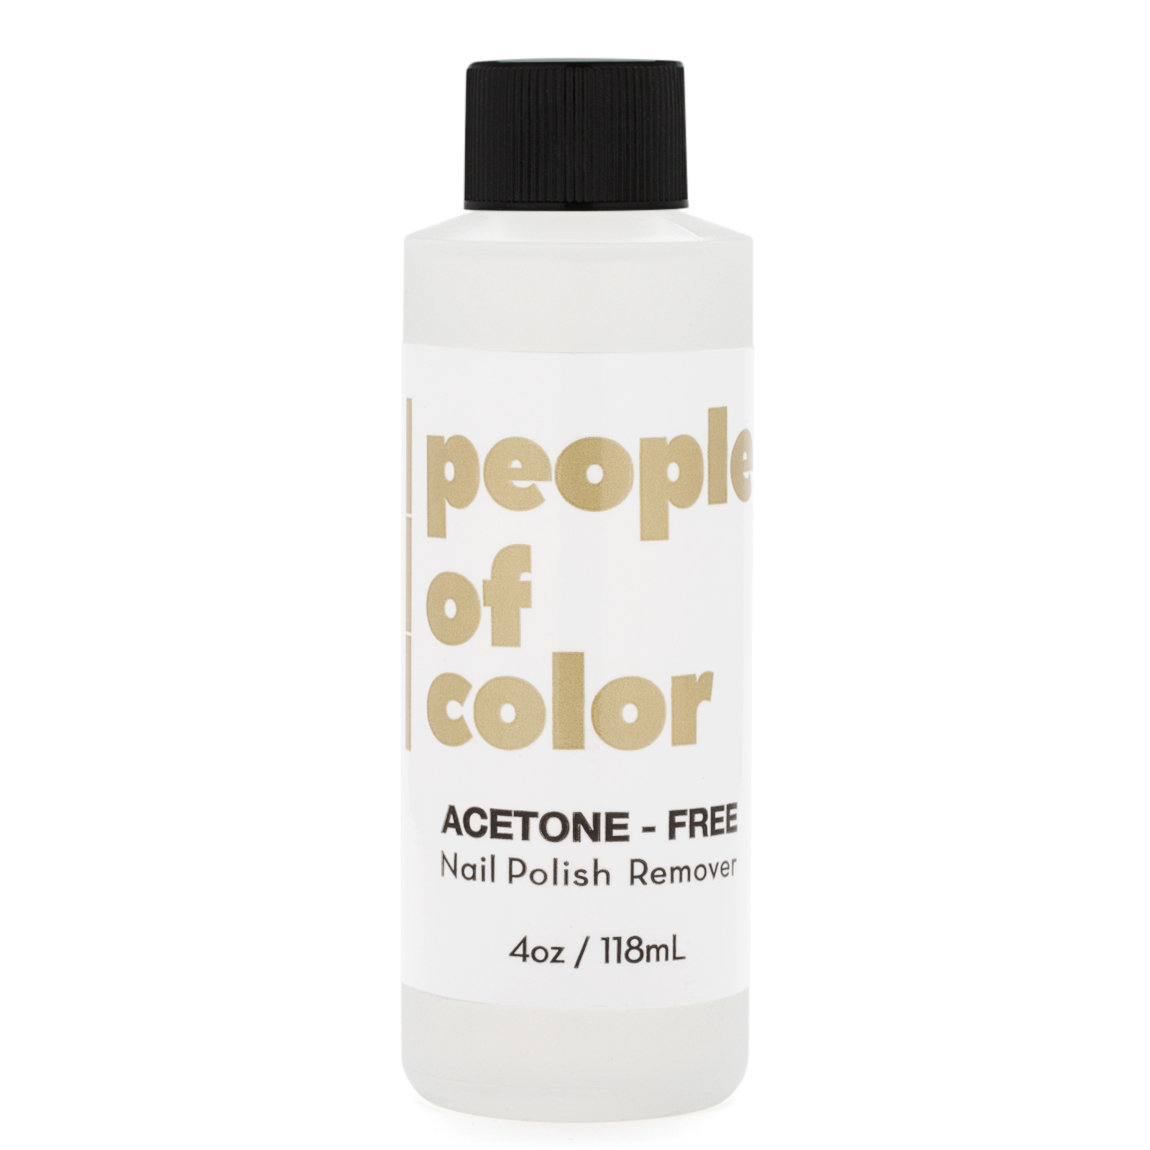 People of Color Beauty Acetone-Free Nail Polish Remover alternative view 1 - product swatch.